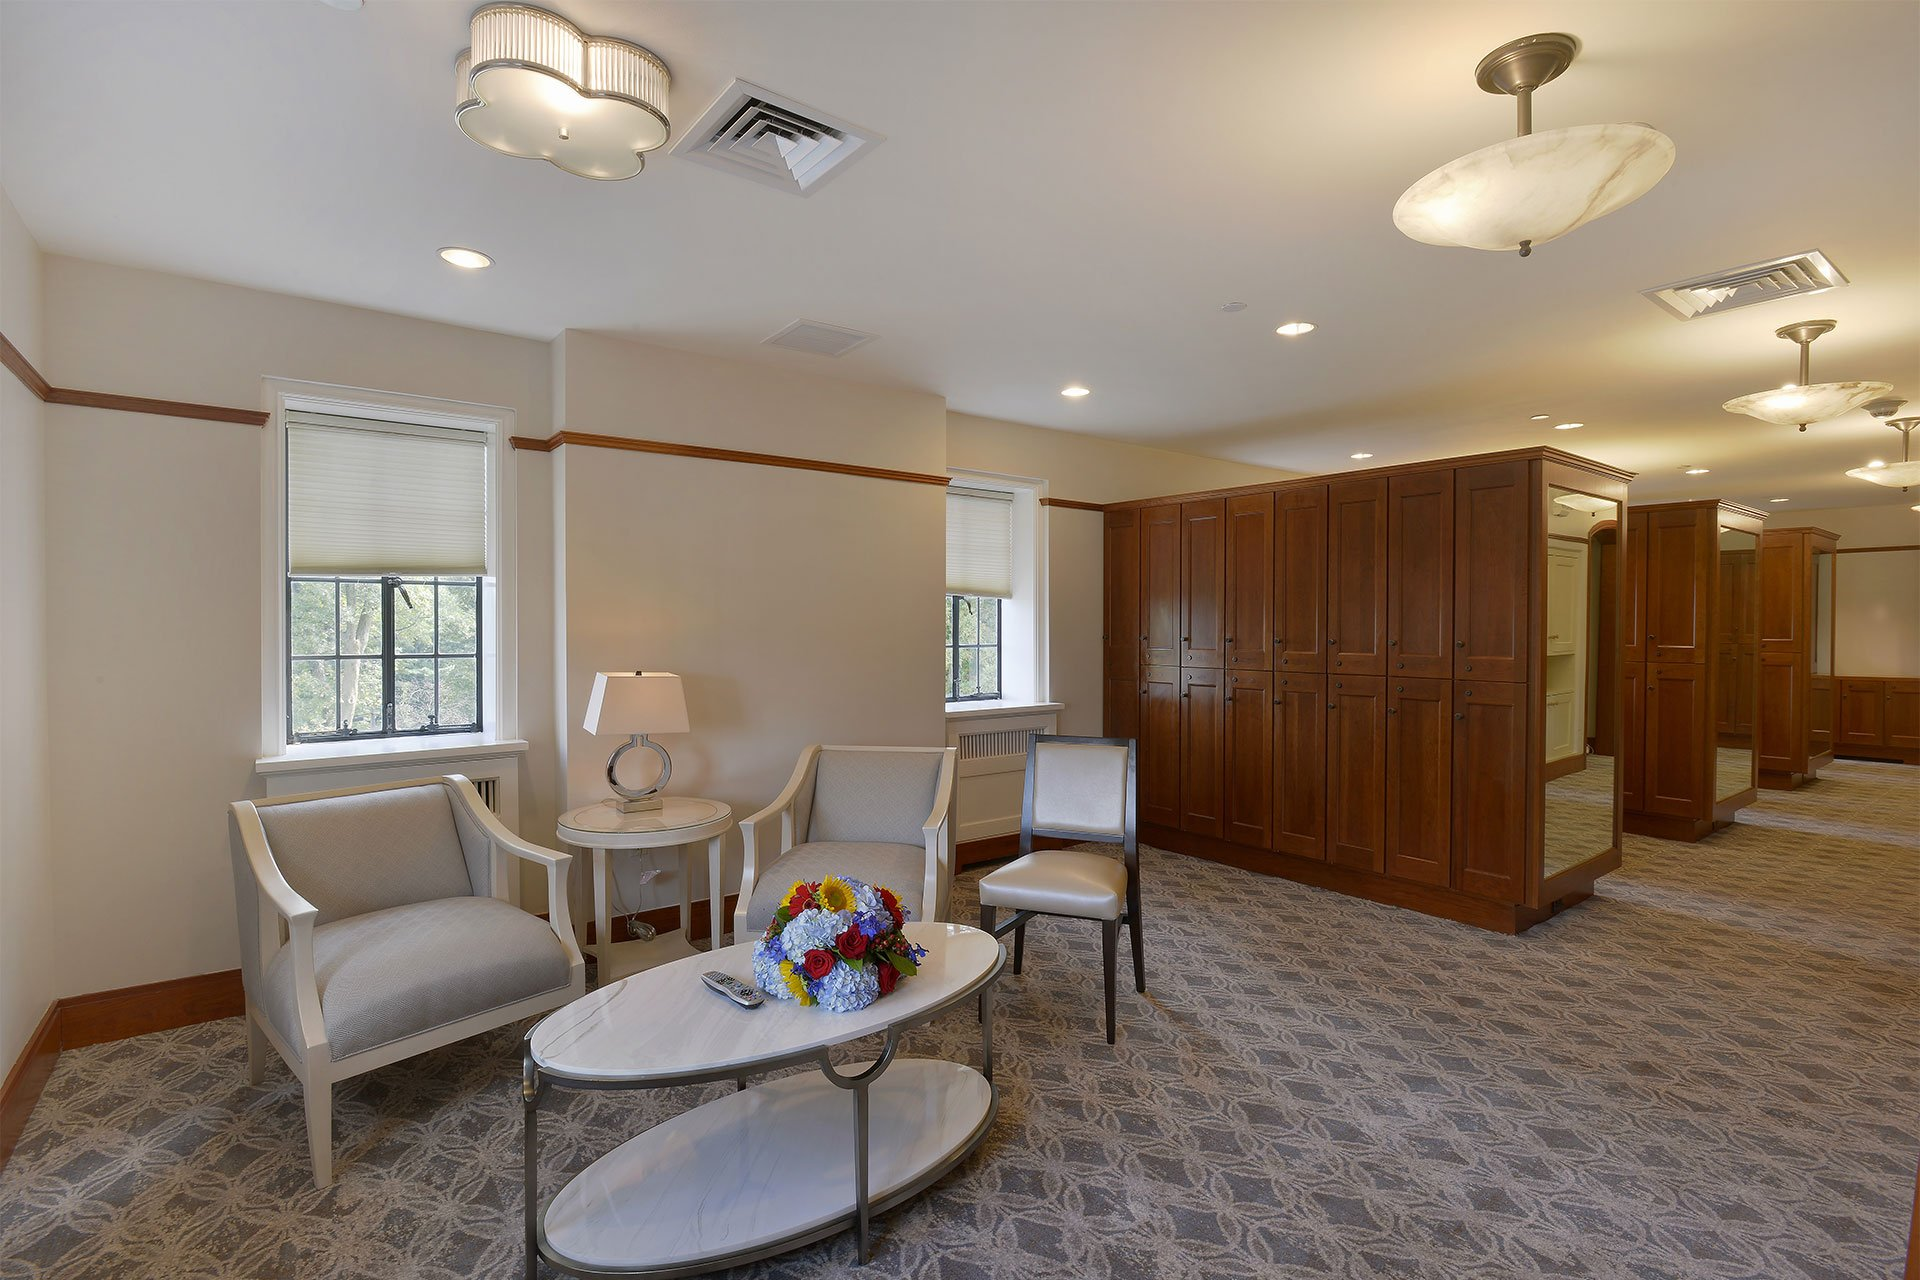 murphy-brothers-contracting-commercial-ardsley-country-club-interior-bathroom-locker-room-lounge